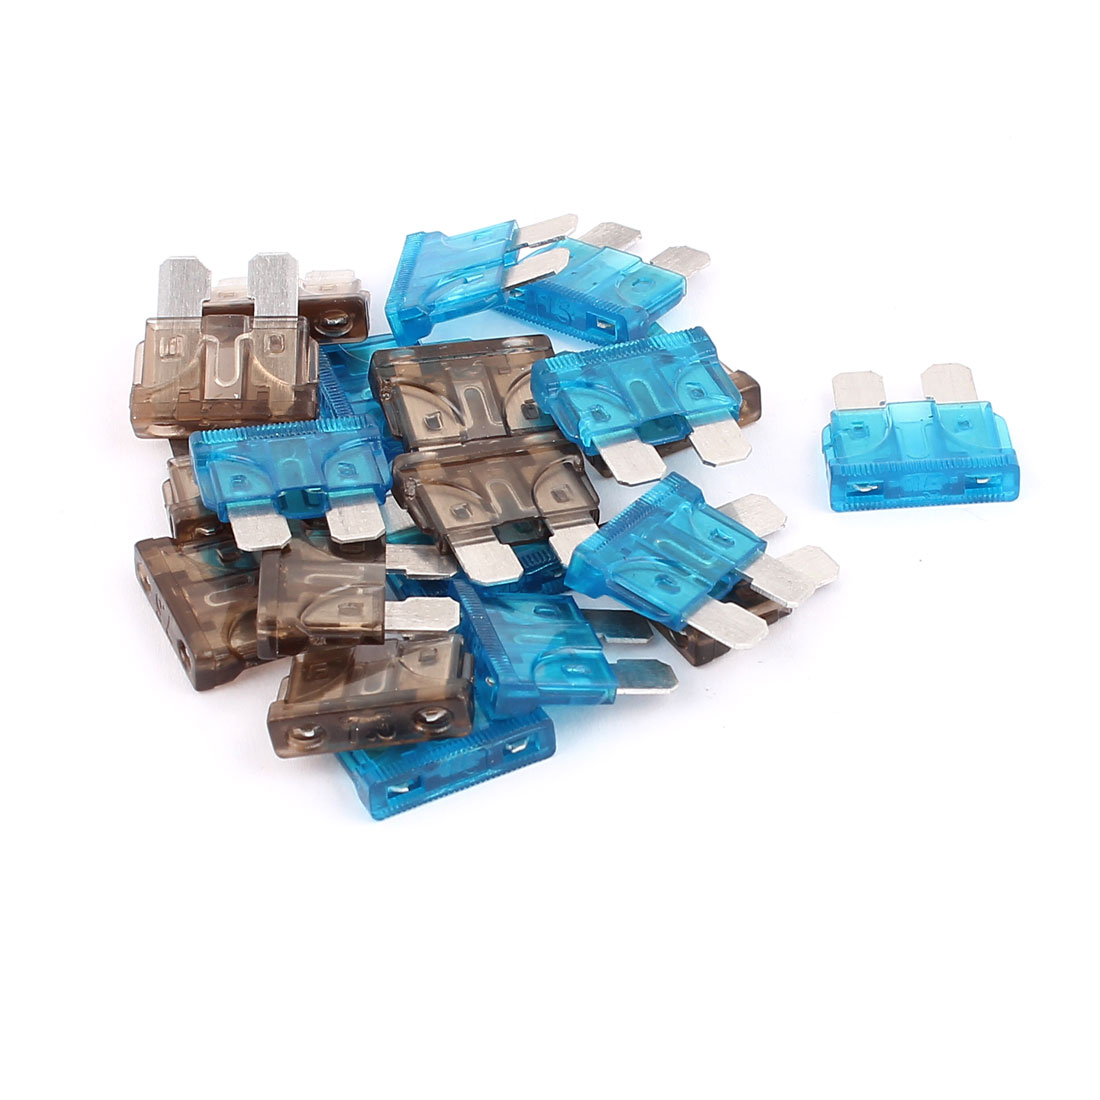 20pcs Automotive Car Vehicle Truck SUV Boat ATO ATC Mini Blade Fuses 7.5A 15A Blue Gray